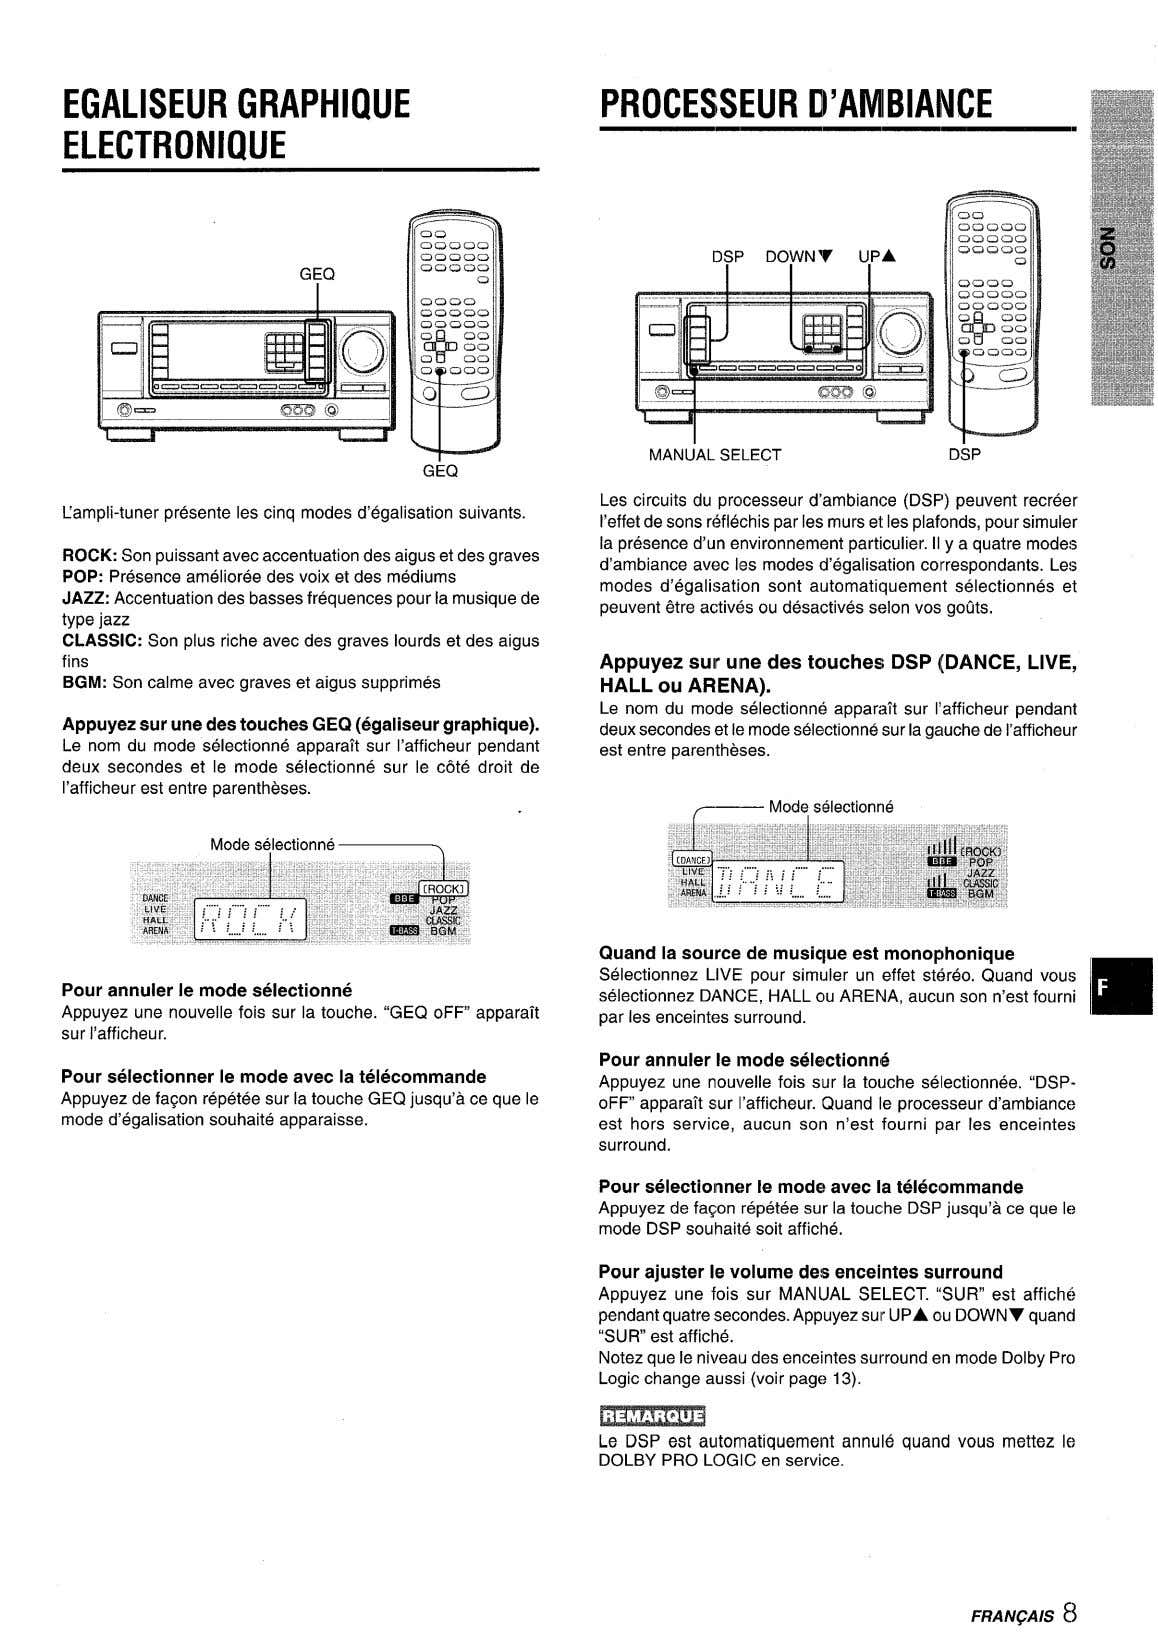 EGALISEUR GRAPHIQUE ELECTRONIQUE PROCESSEUR D'AMIBIANCE DSF) DOWNV UPA GEQ MANUAL SELECT DSP GEQ Pampli-tuner